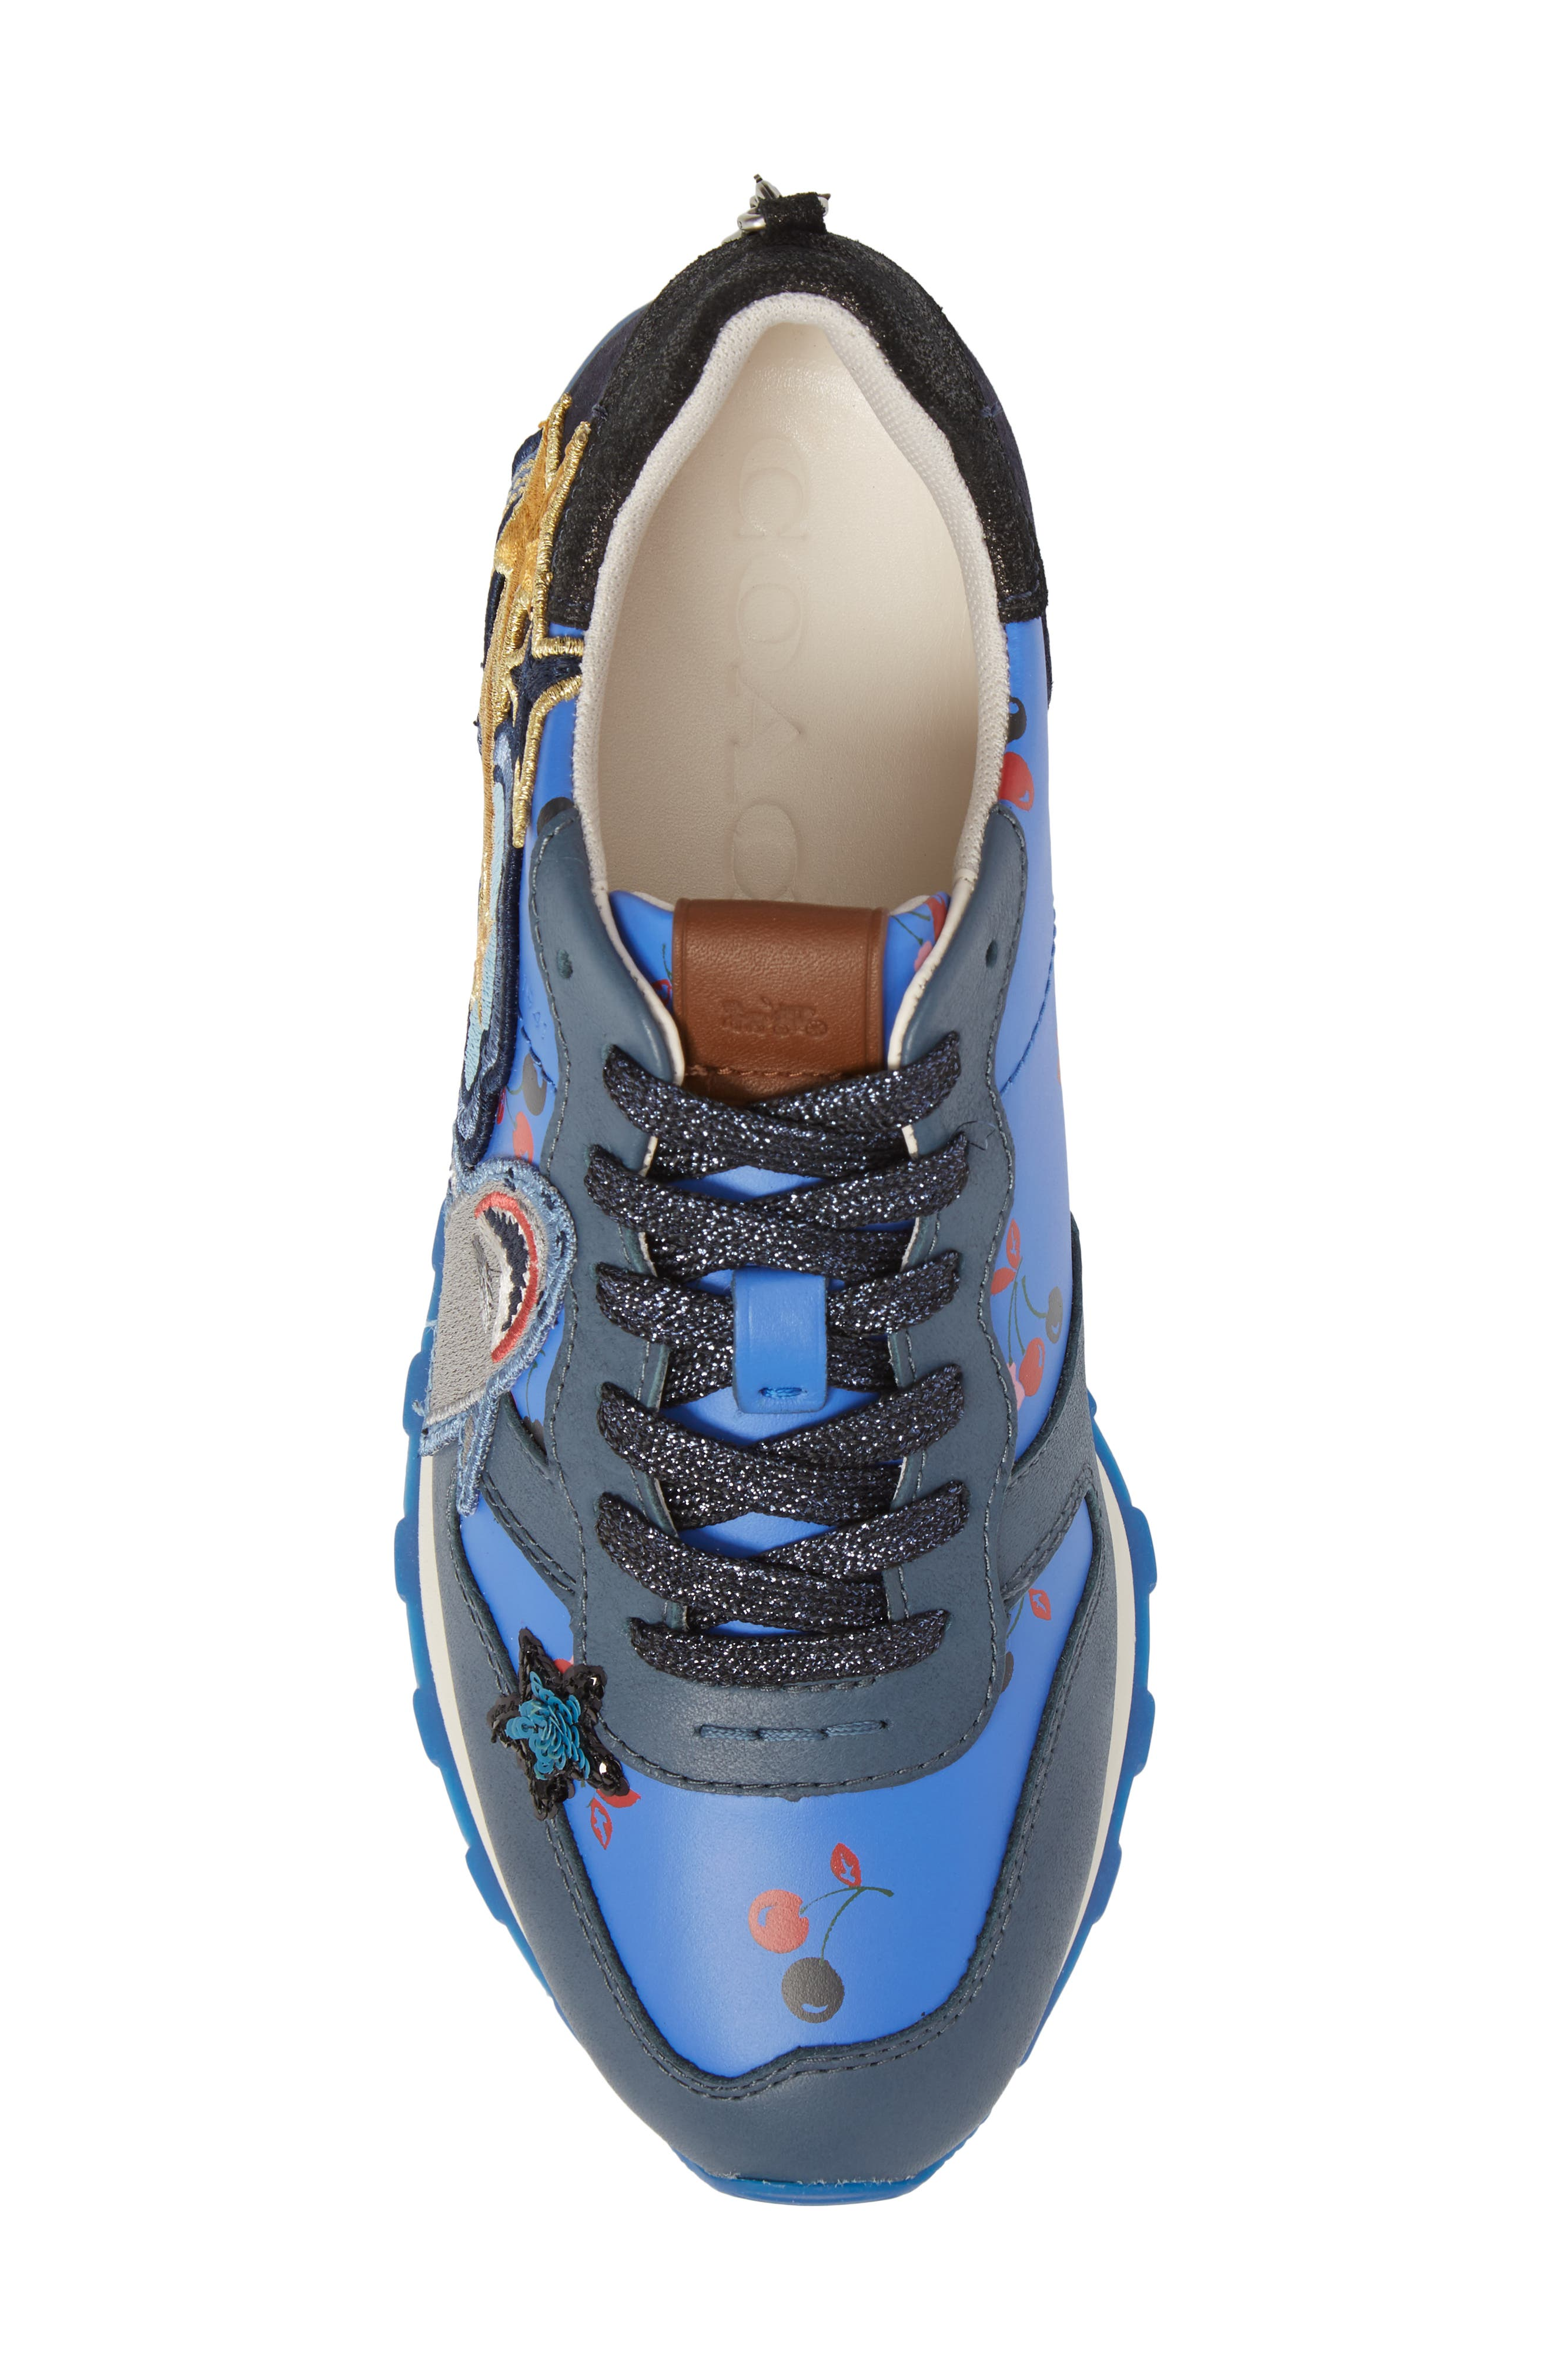 Patch Sneaker,                             Alternate thumbnail 5, color,                             Blue/ Grey Leather